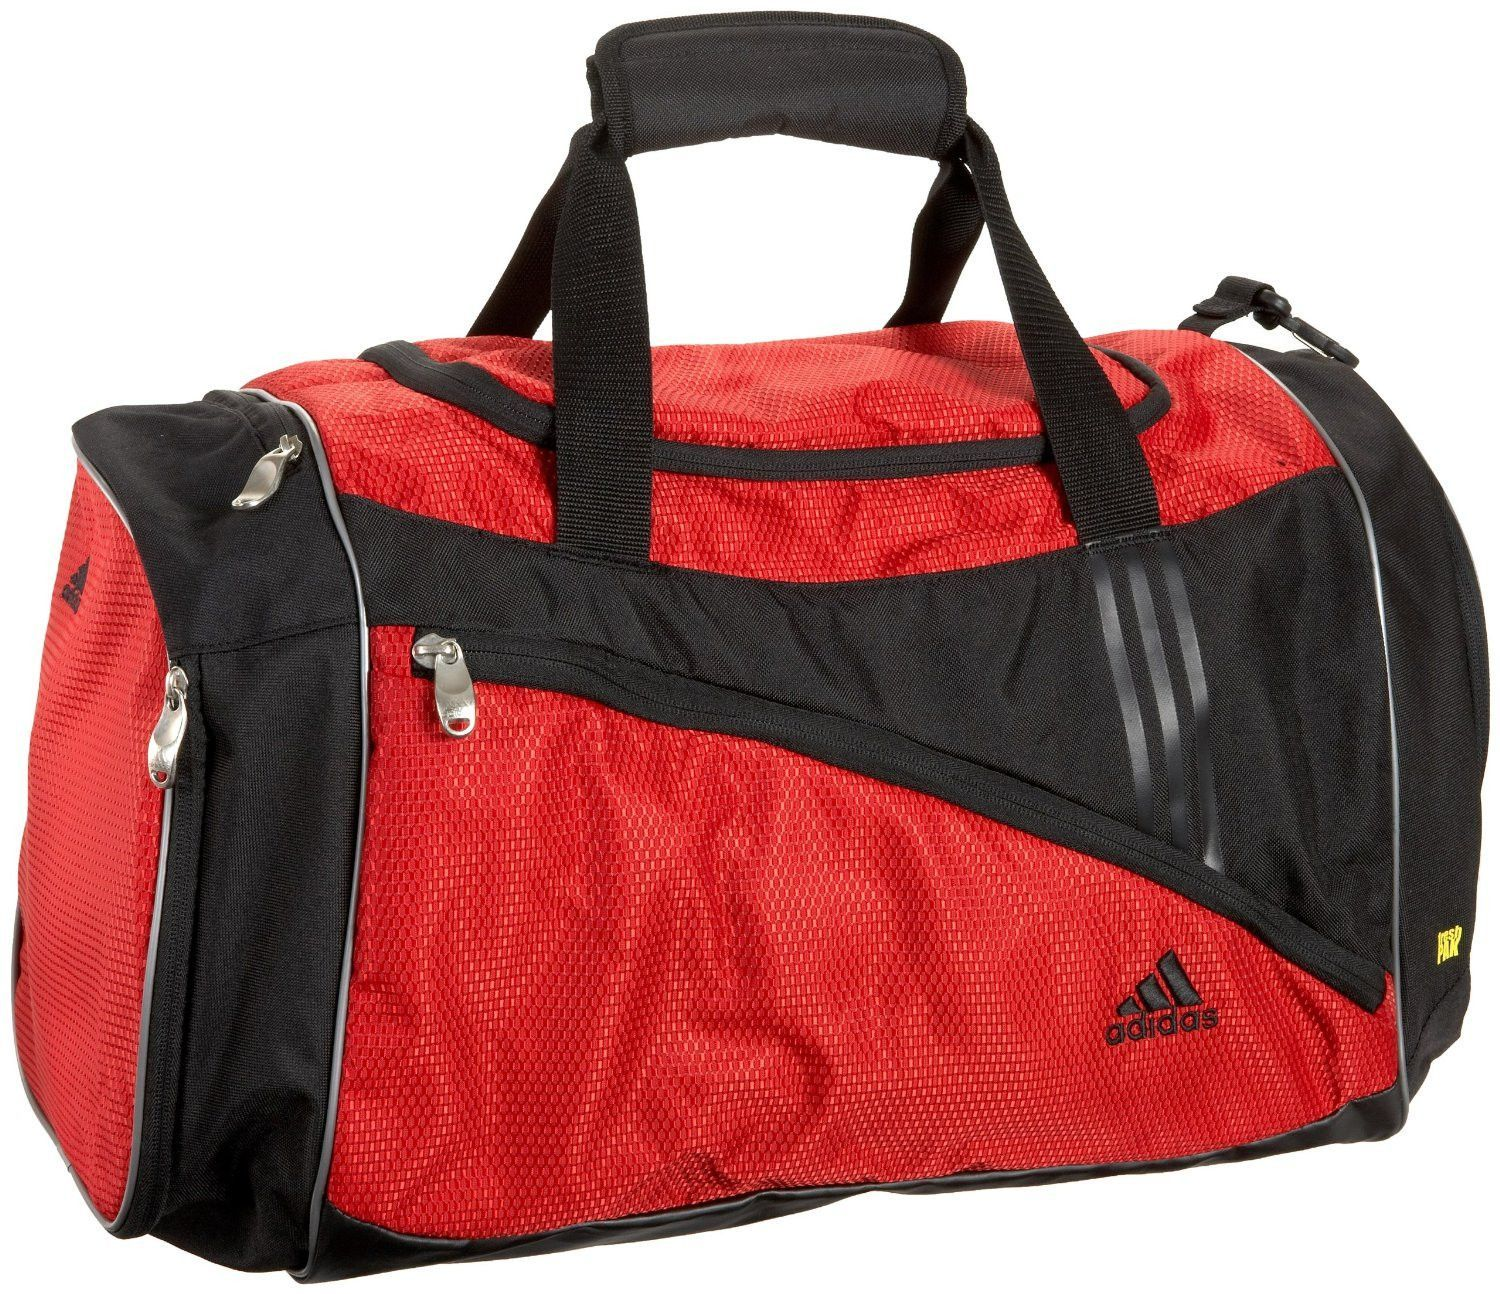 This Adidas Scorch Team Duffel Bag Is Made To Carry Everything You Need For Those Tournaments And It Has A Large Main Compartment With Sy